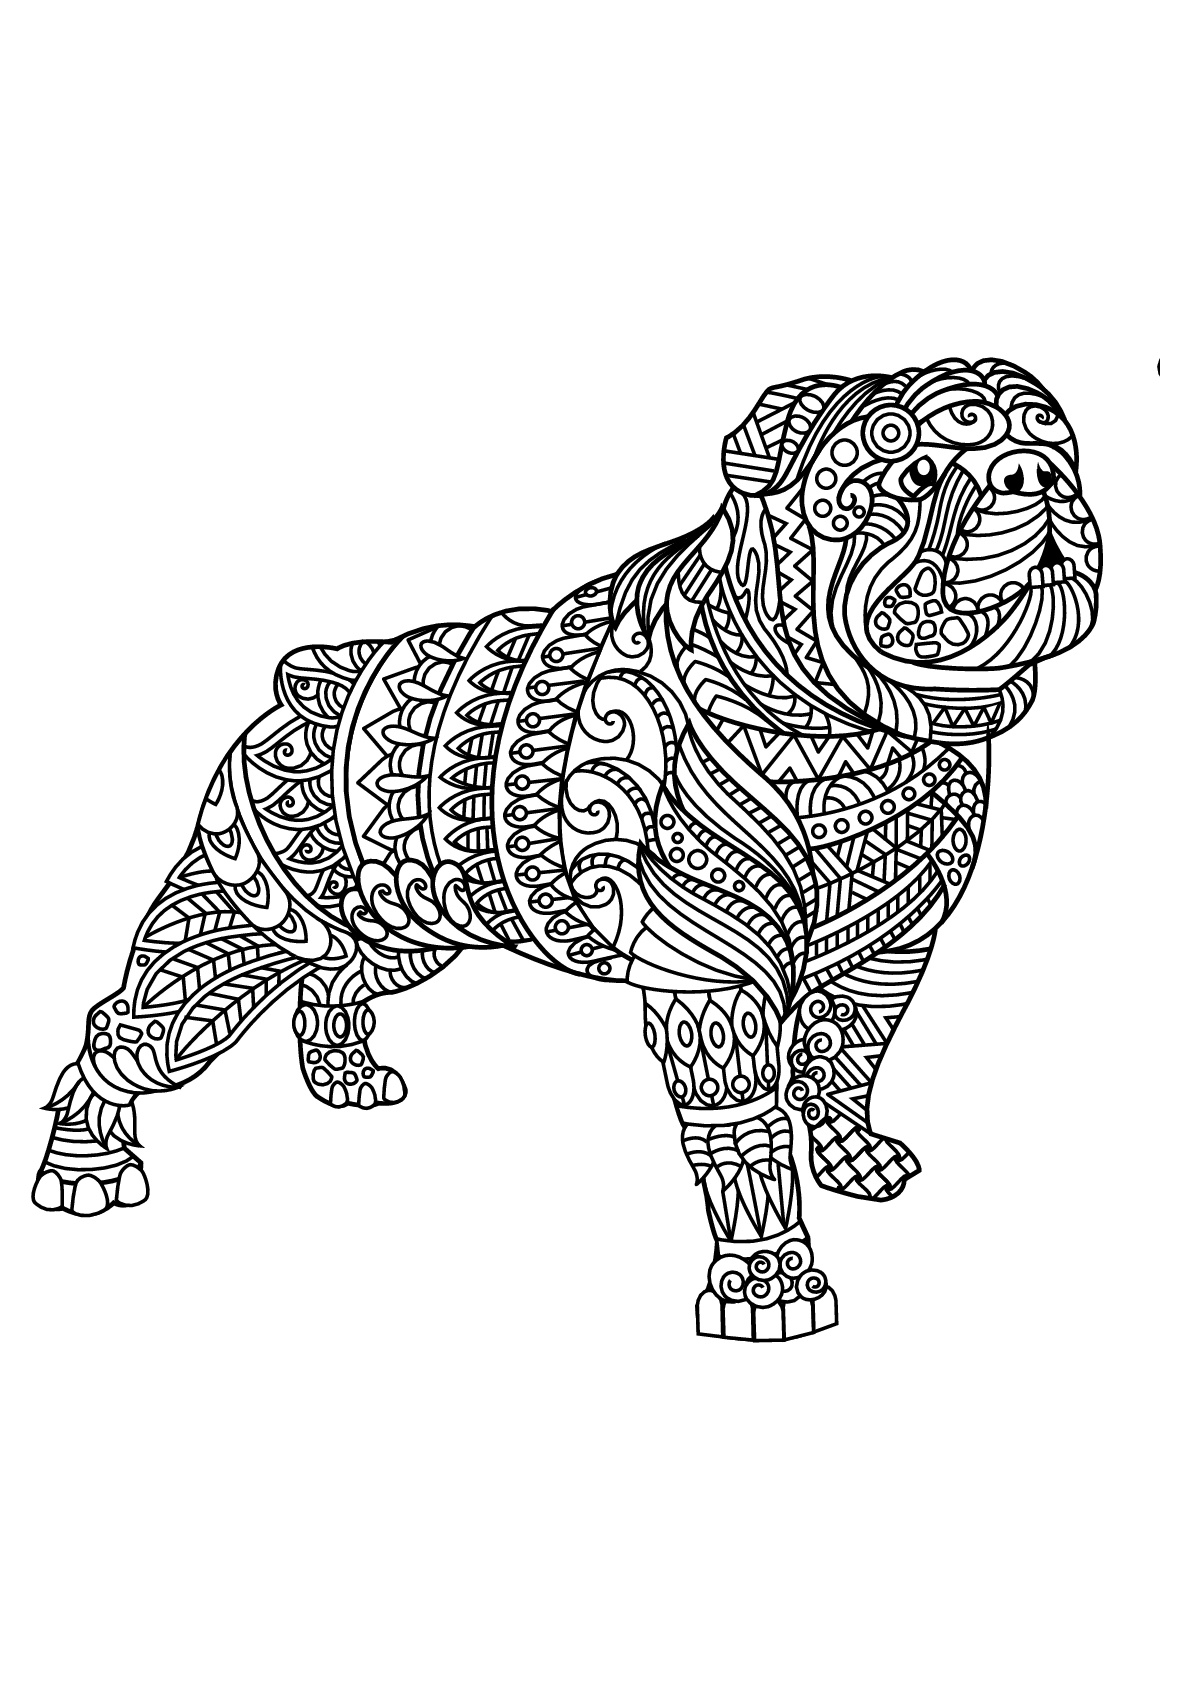 Free Dog coloring page to print and color : bulldog